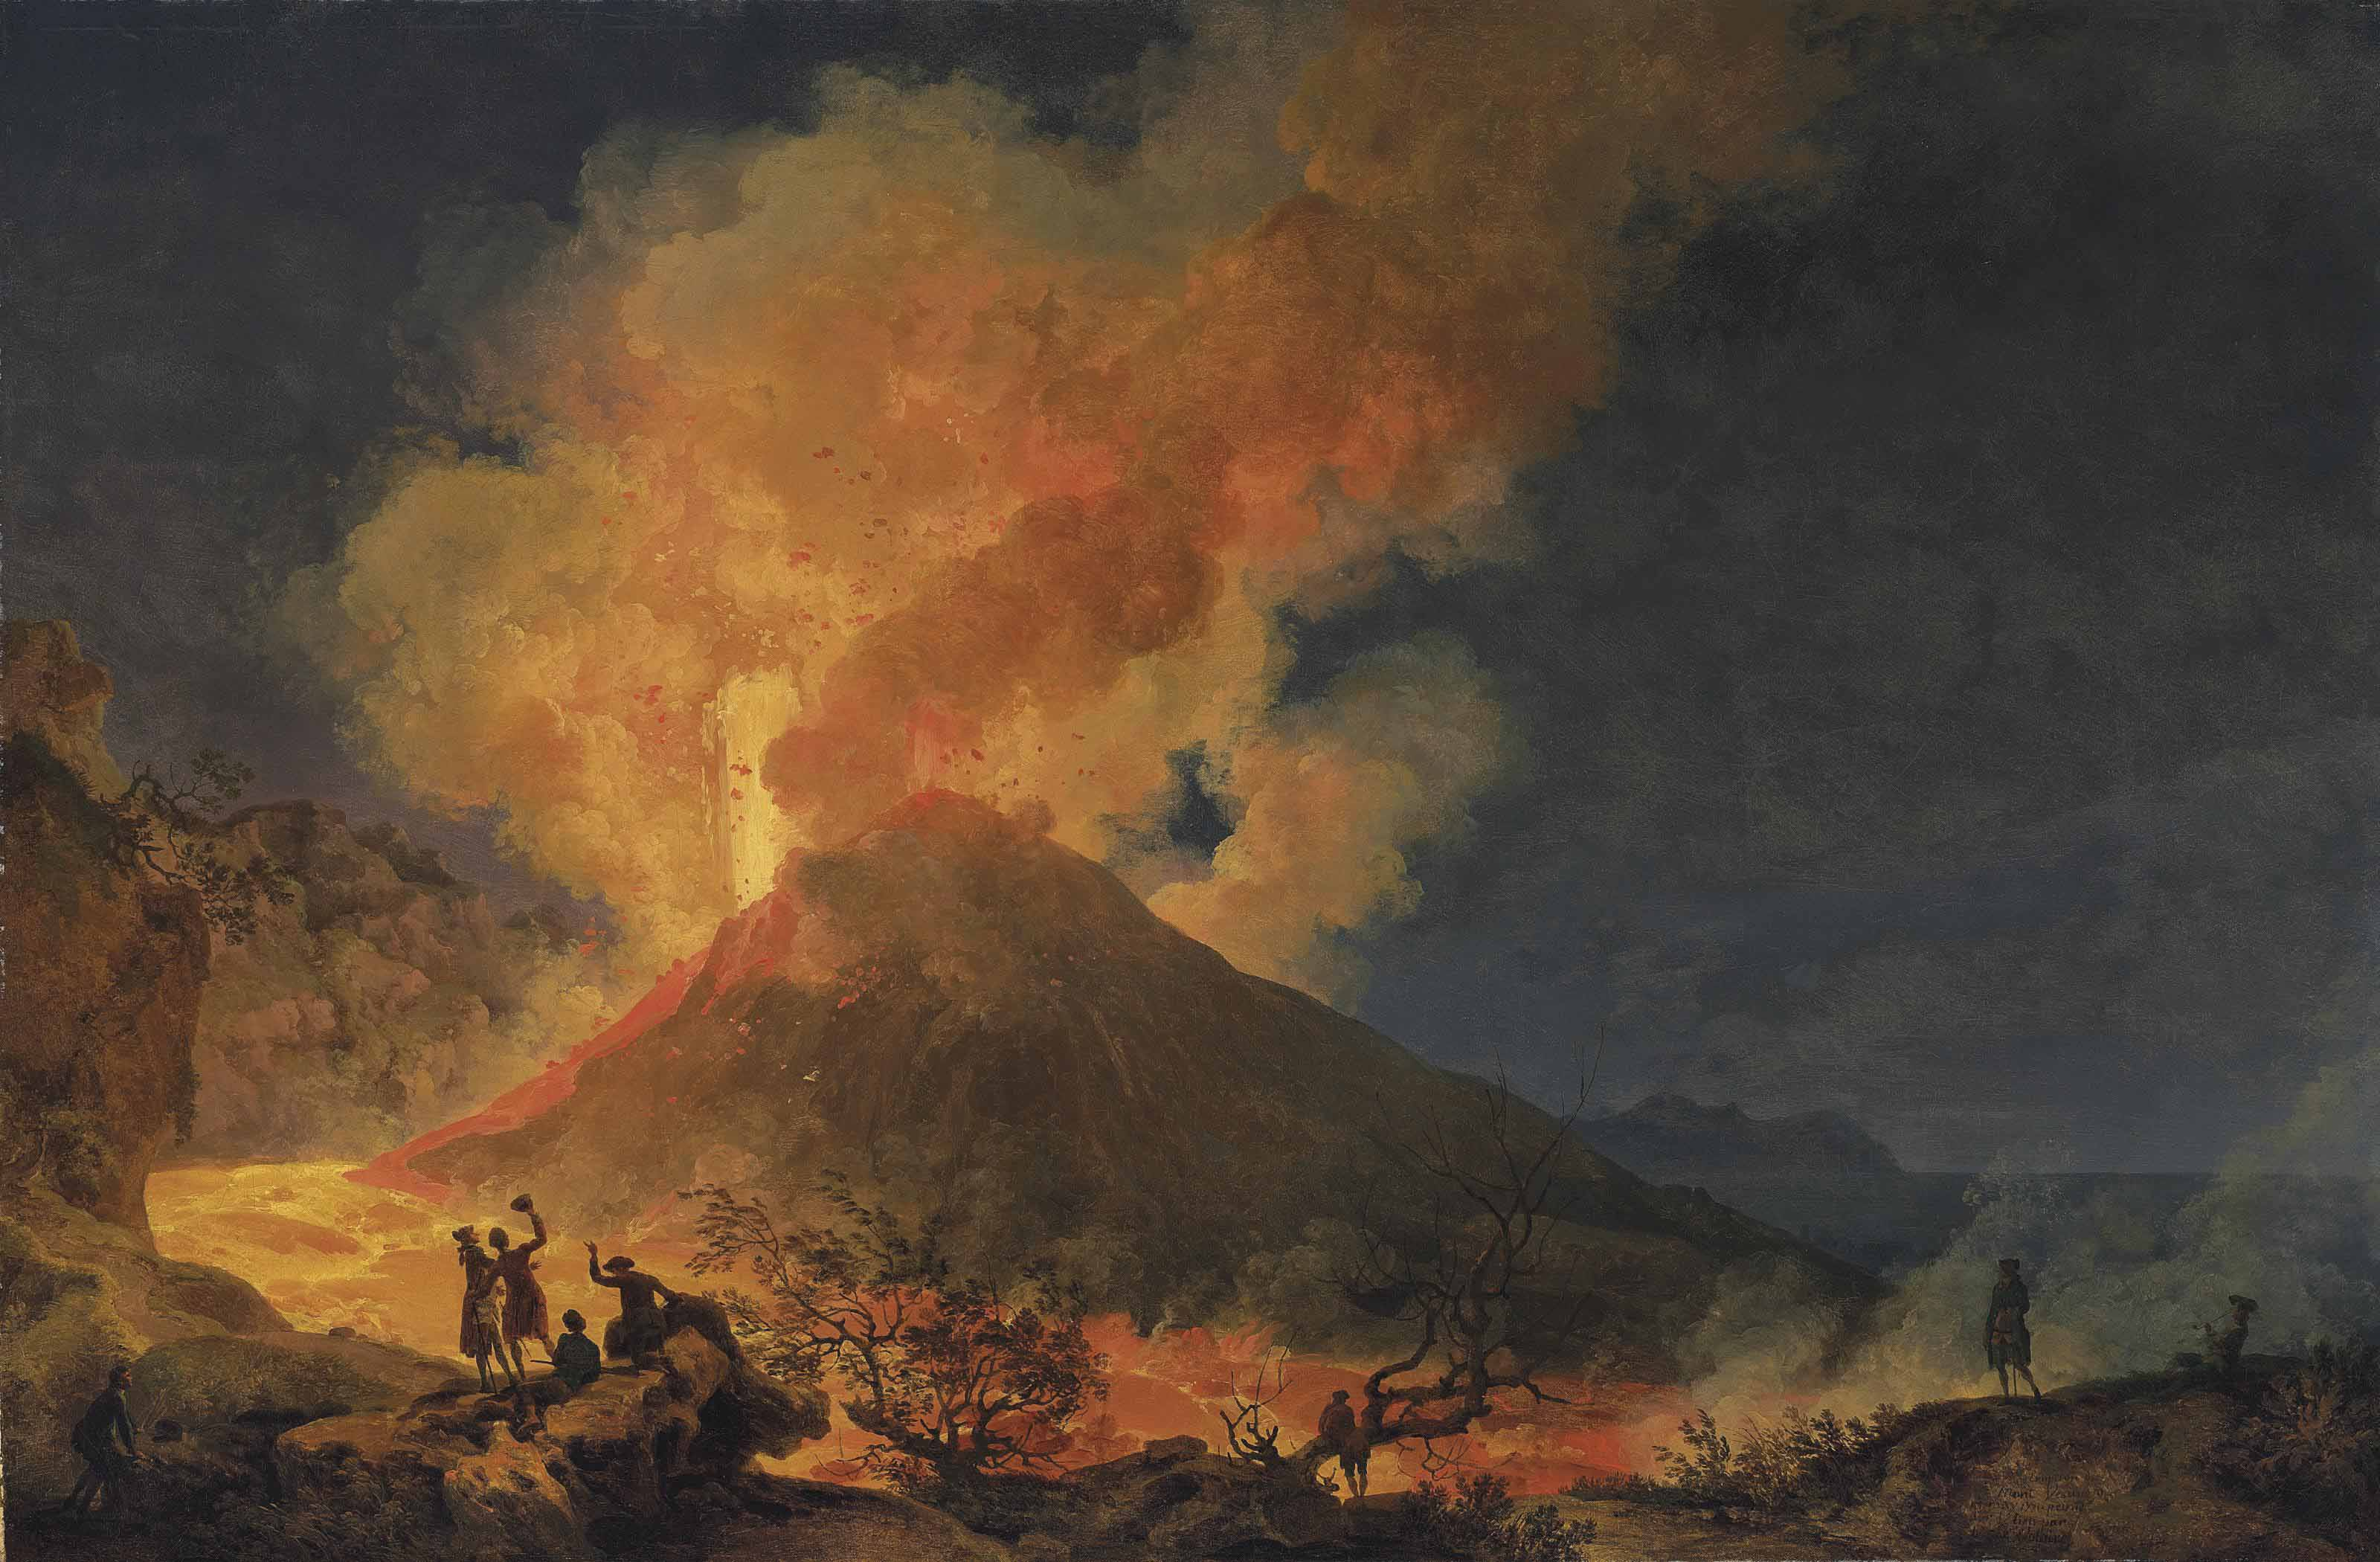 Vesuvius erupting at night seen from the Atrio del Cavallo, with elegant onlookers, a view of Portici and Capri beyond